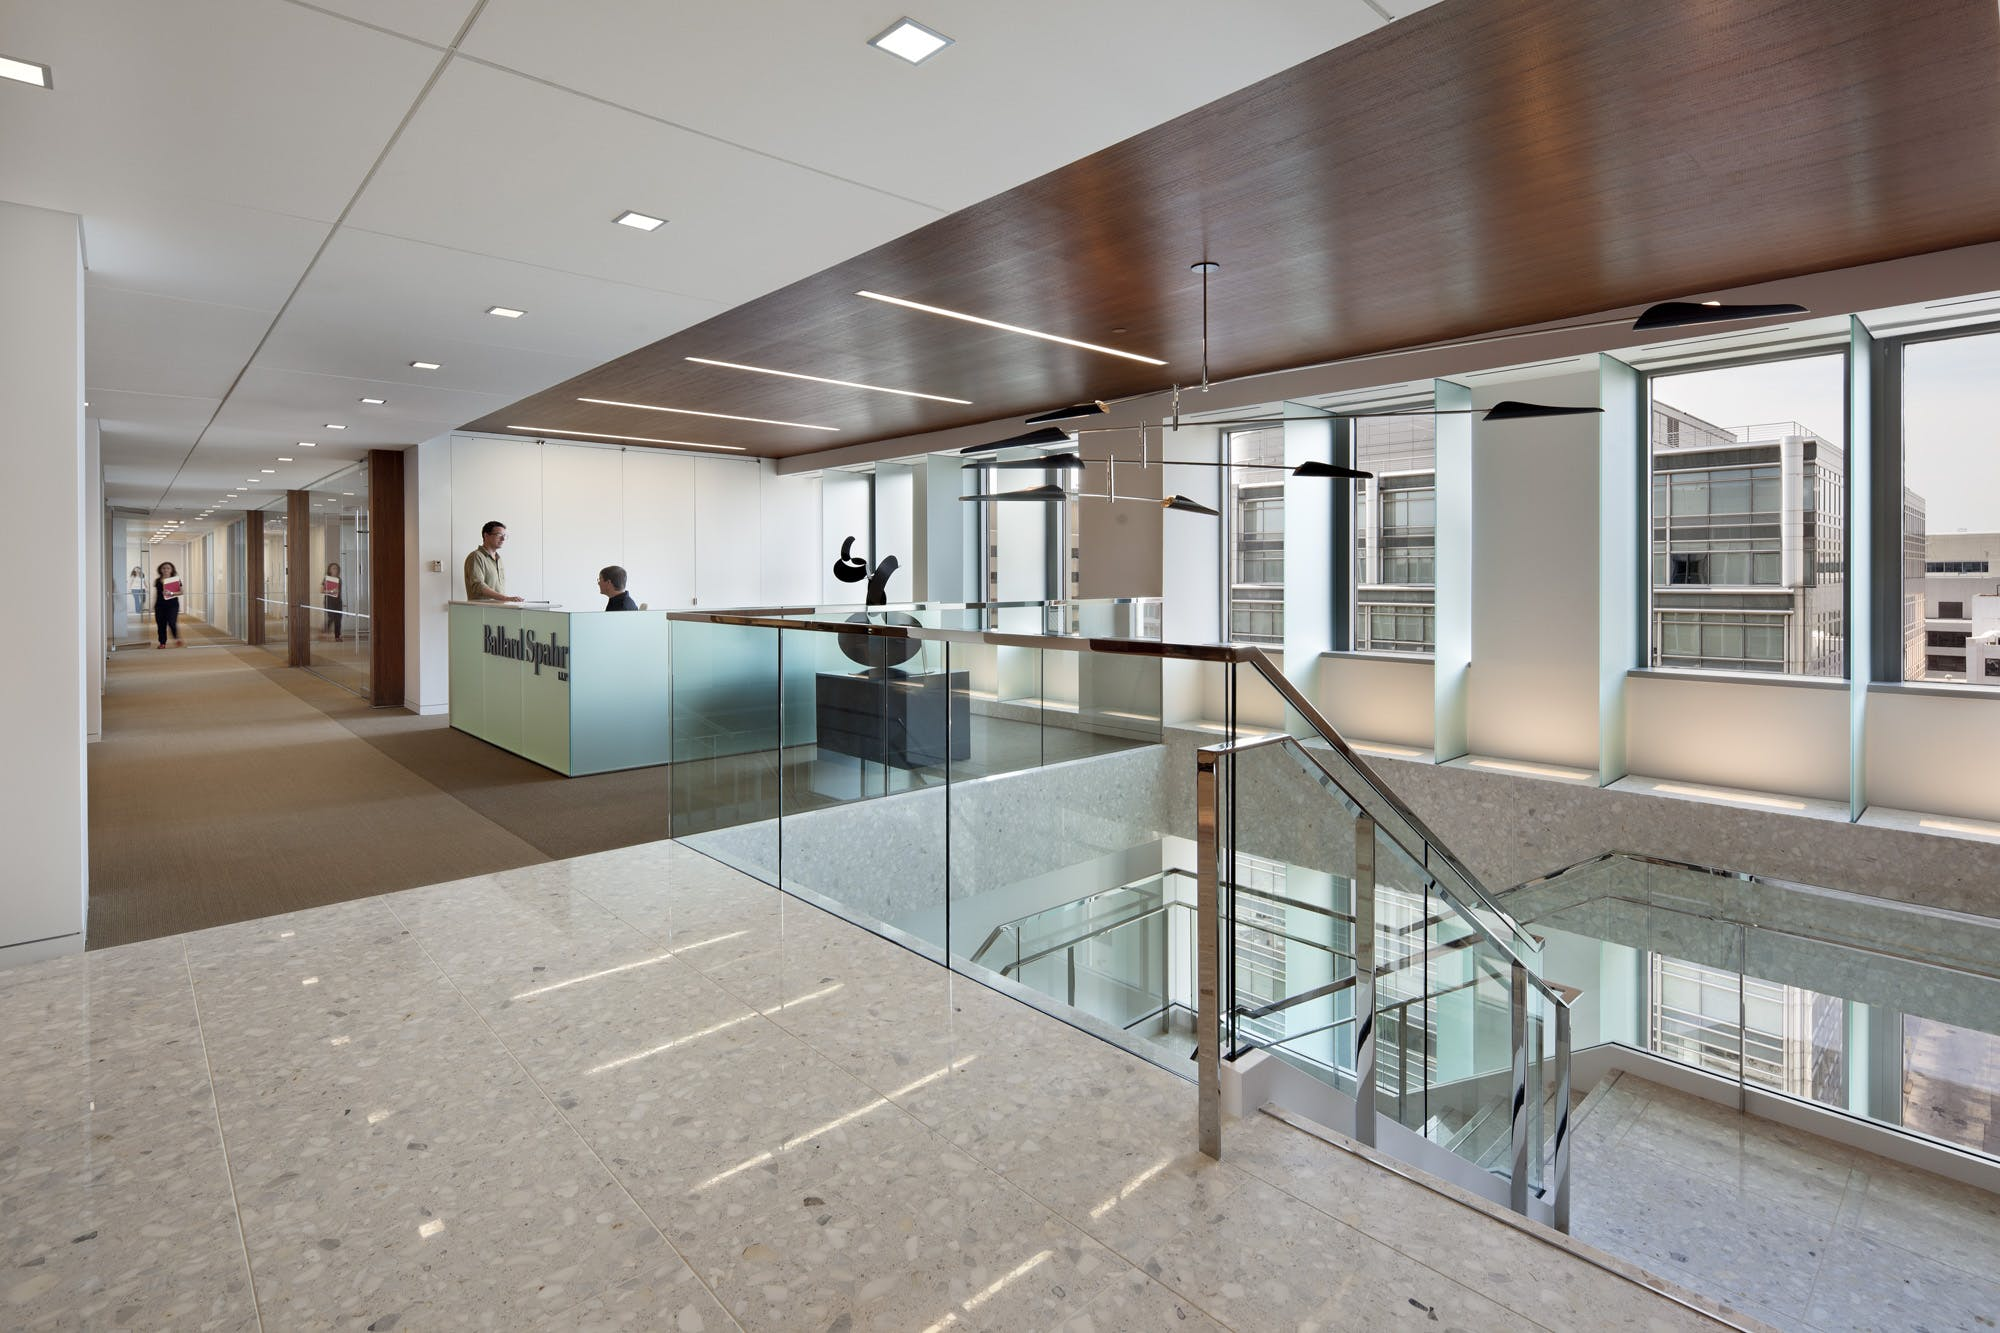 ballard spahr llp skb architecture and design archinect my role architects and designers additional credits michael moran photographer